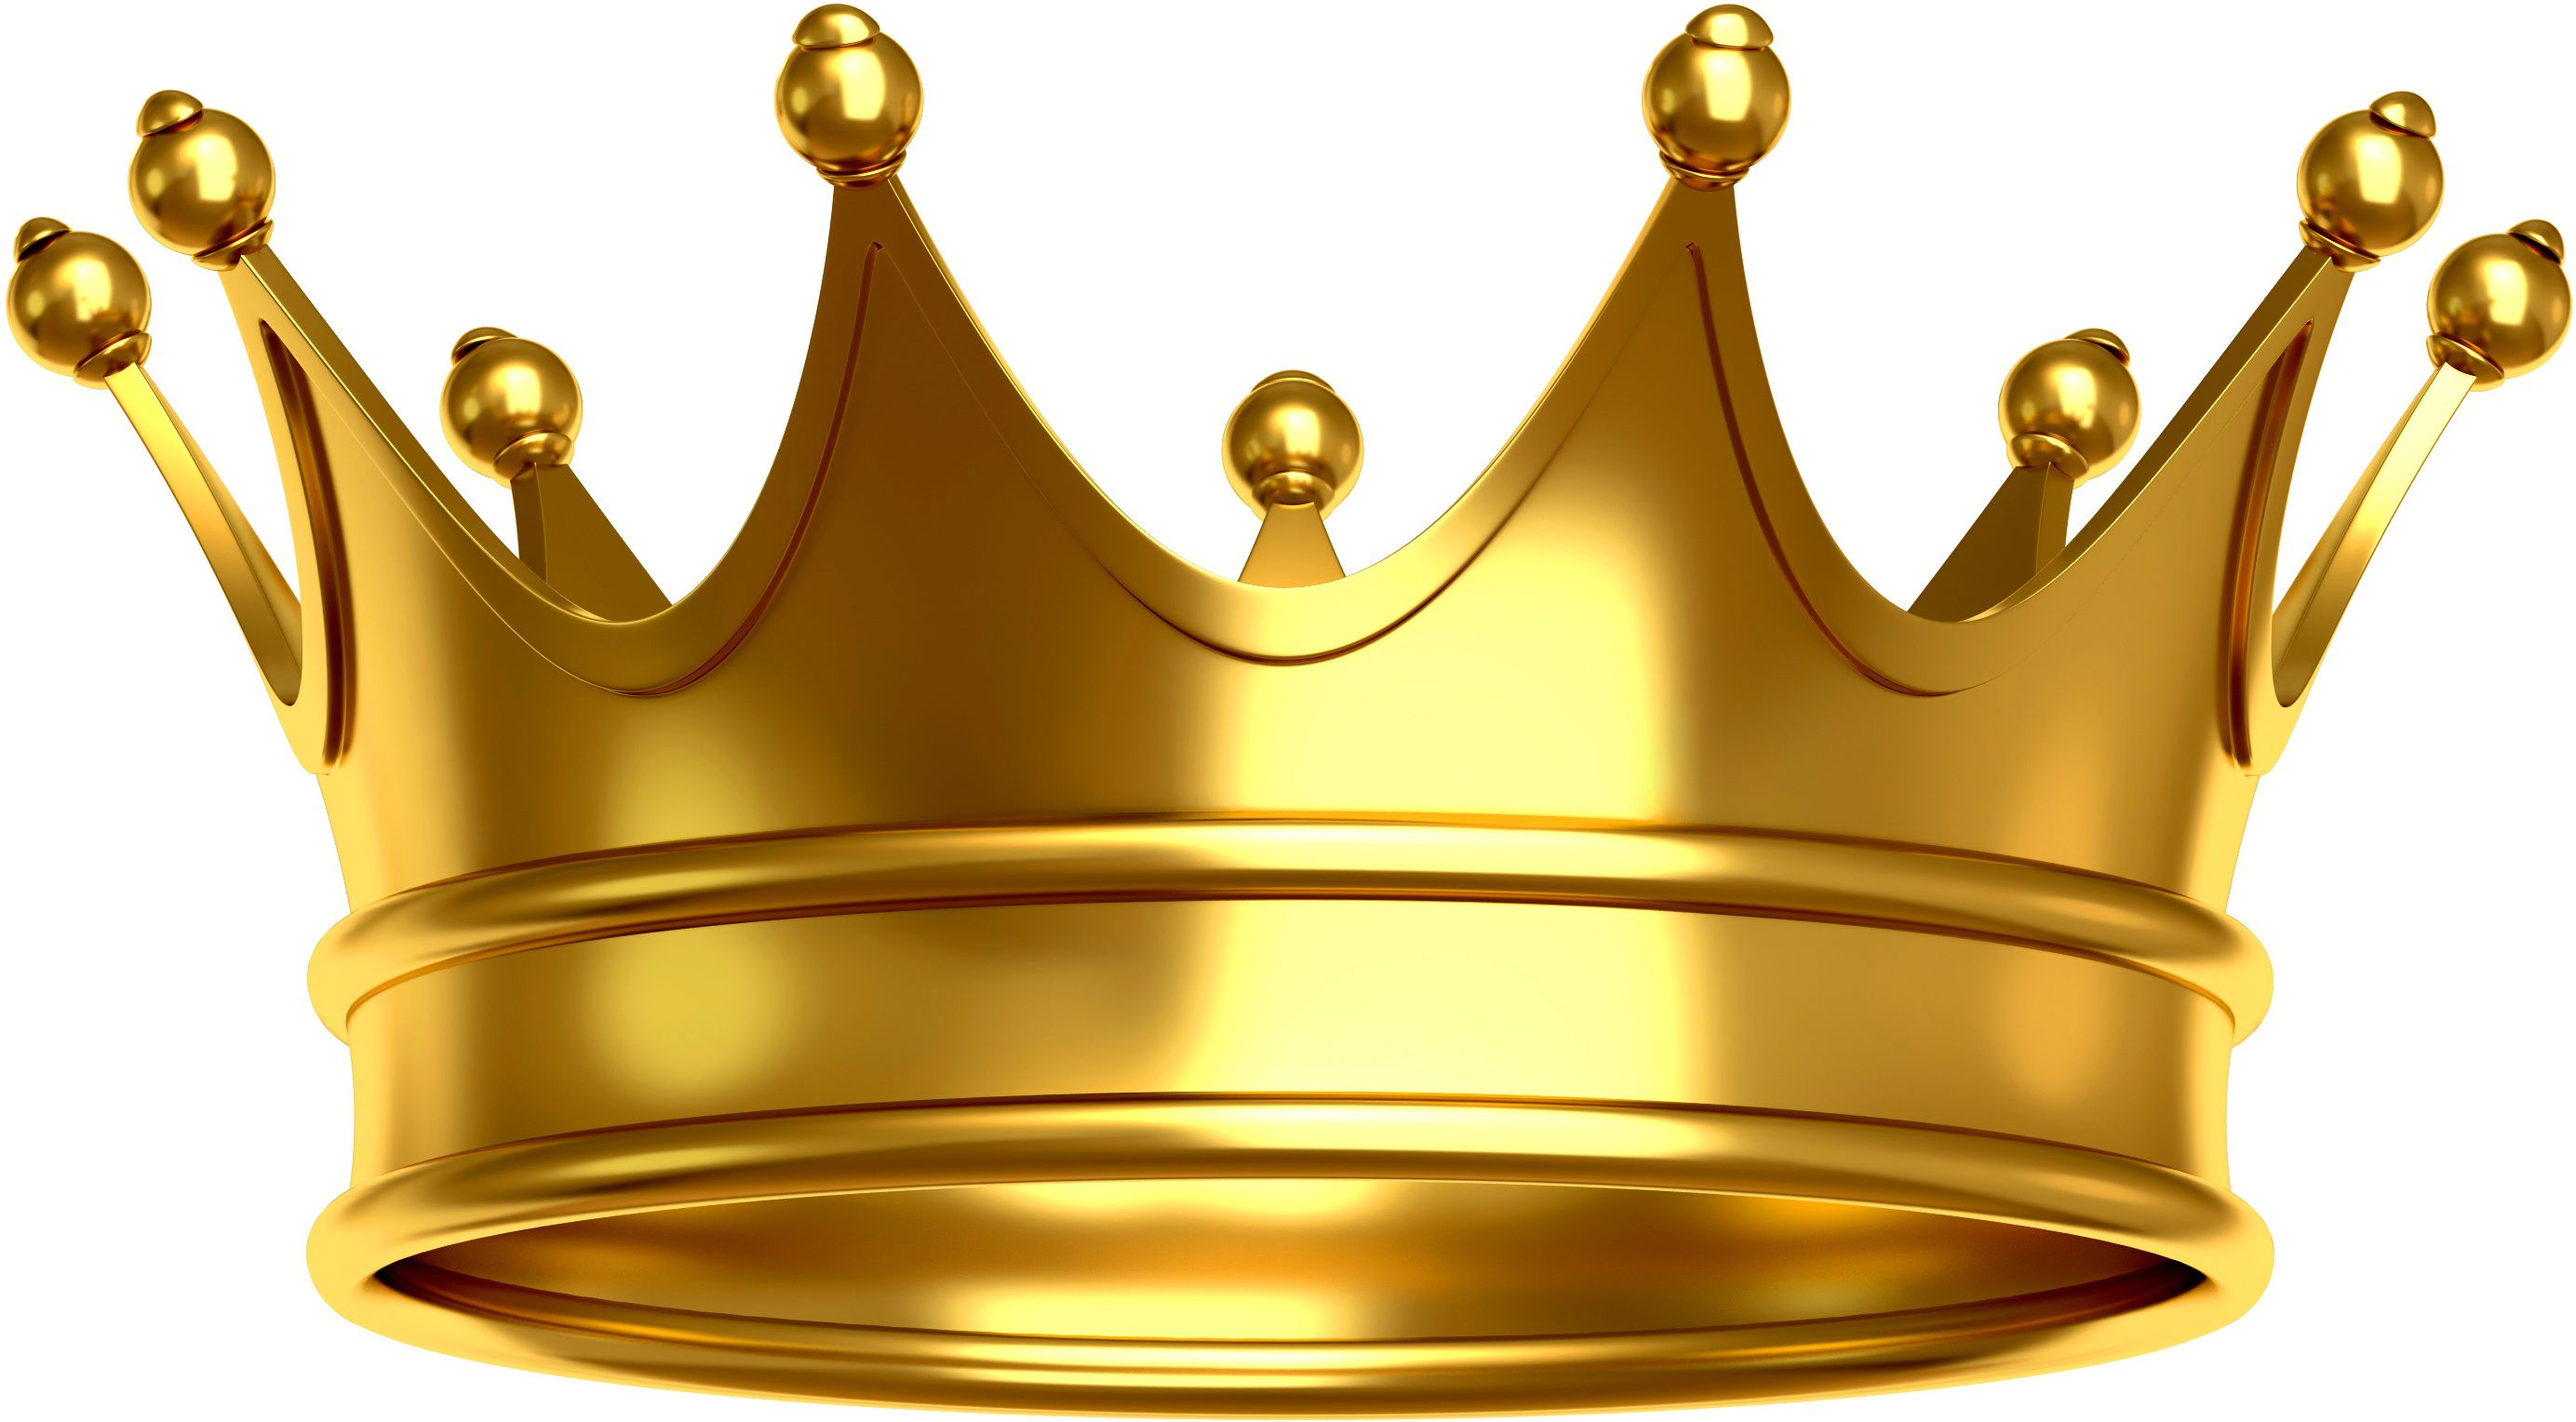 Image result for crowns